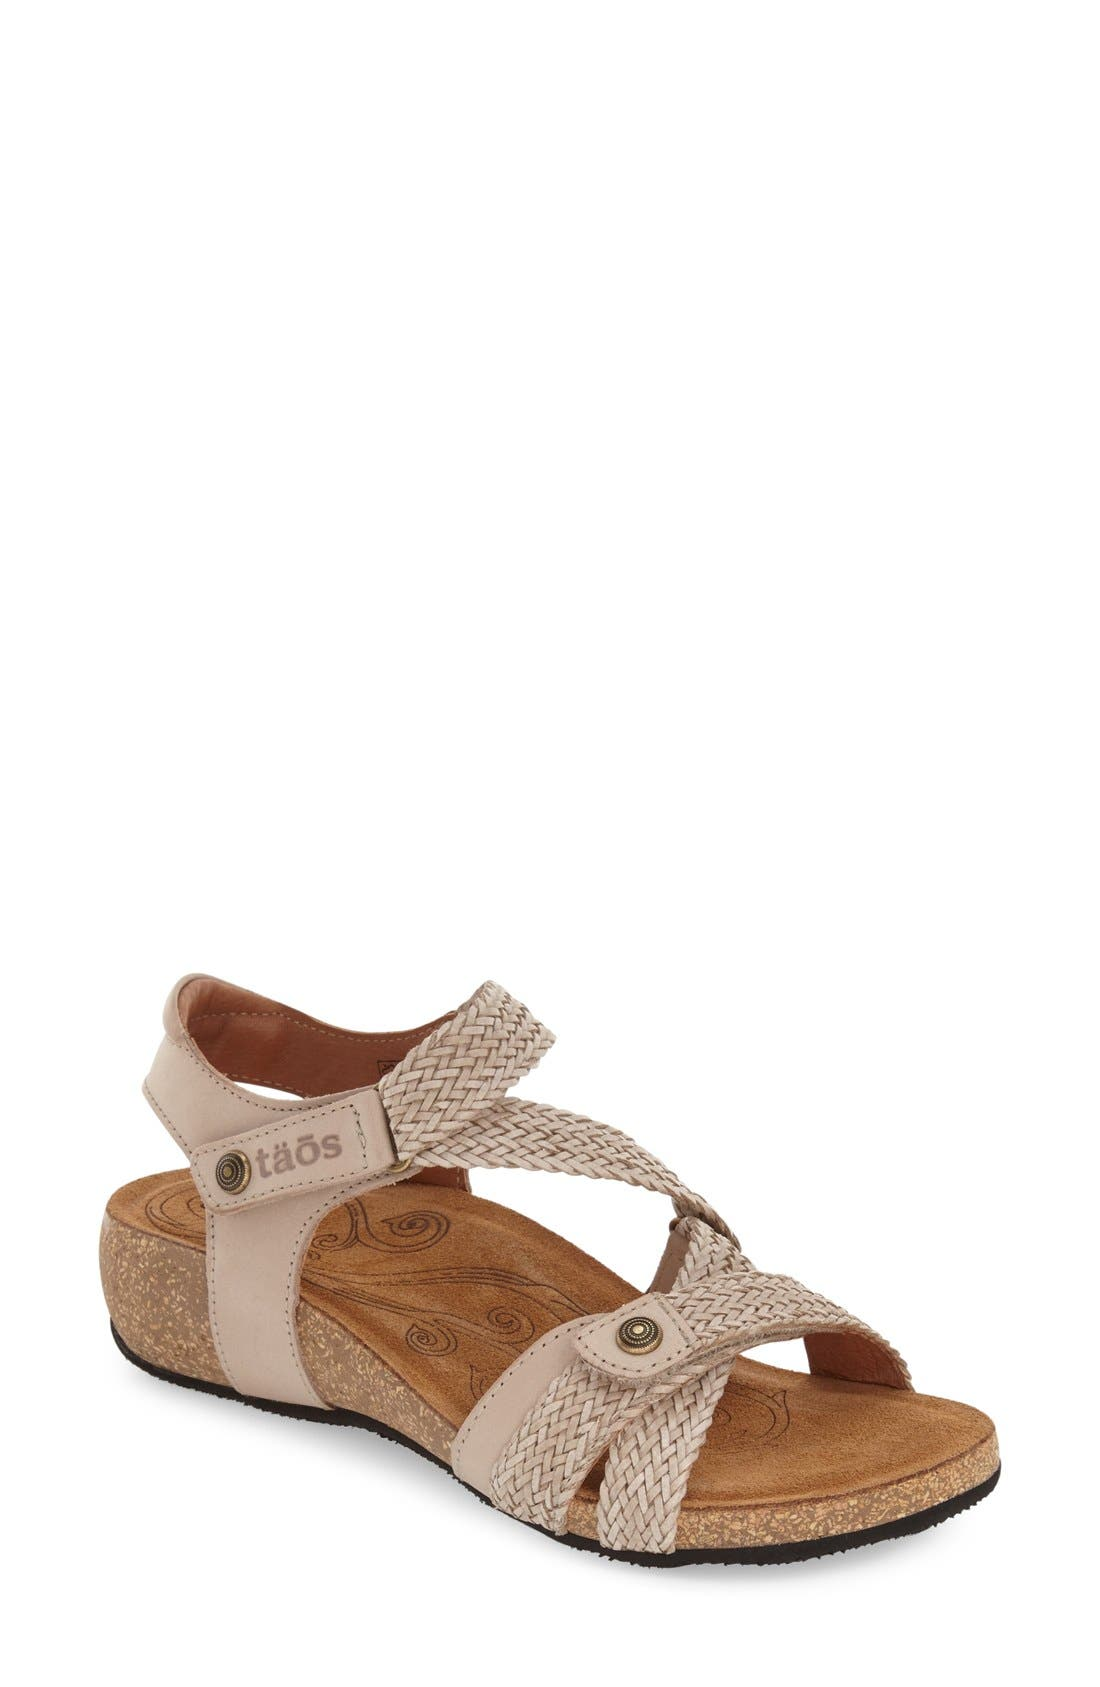 'Trulie' Wedge Sandal,                         Main,                         color, Stone Leather